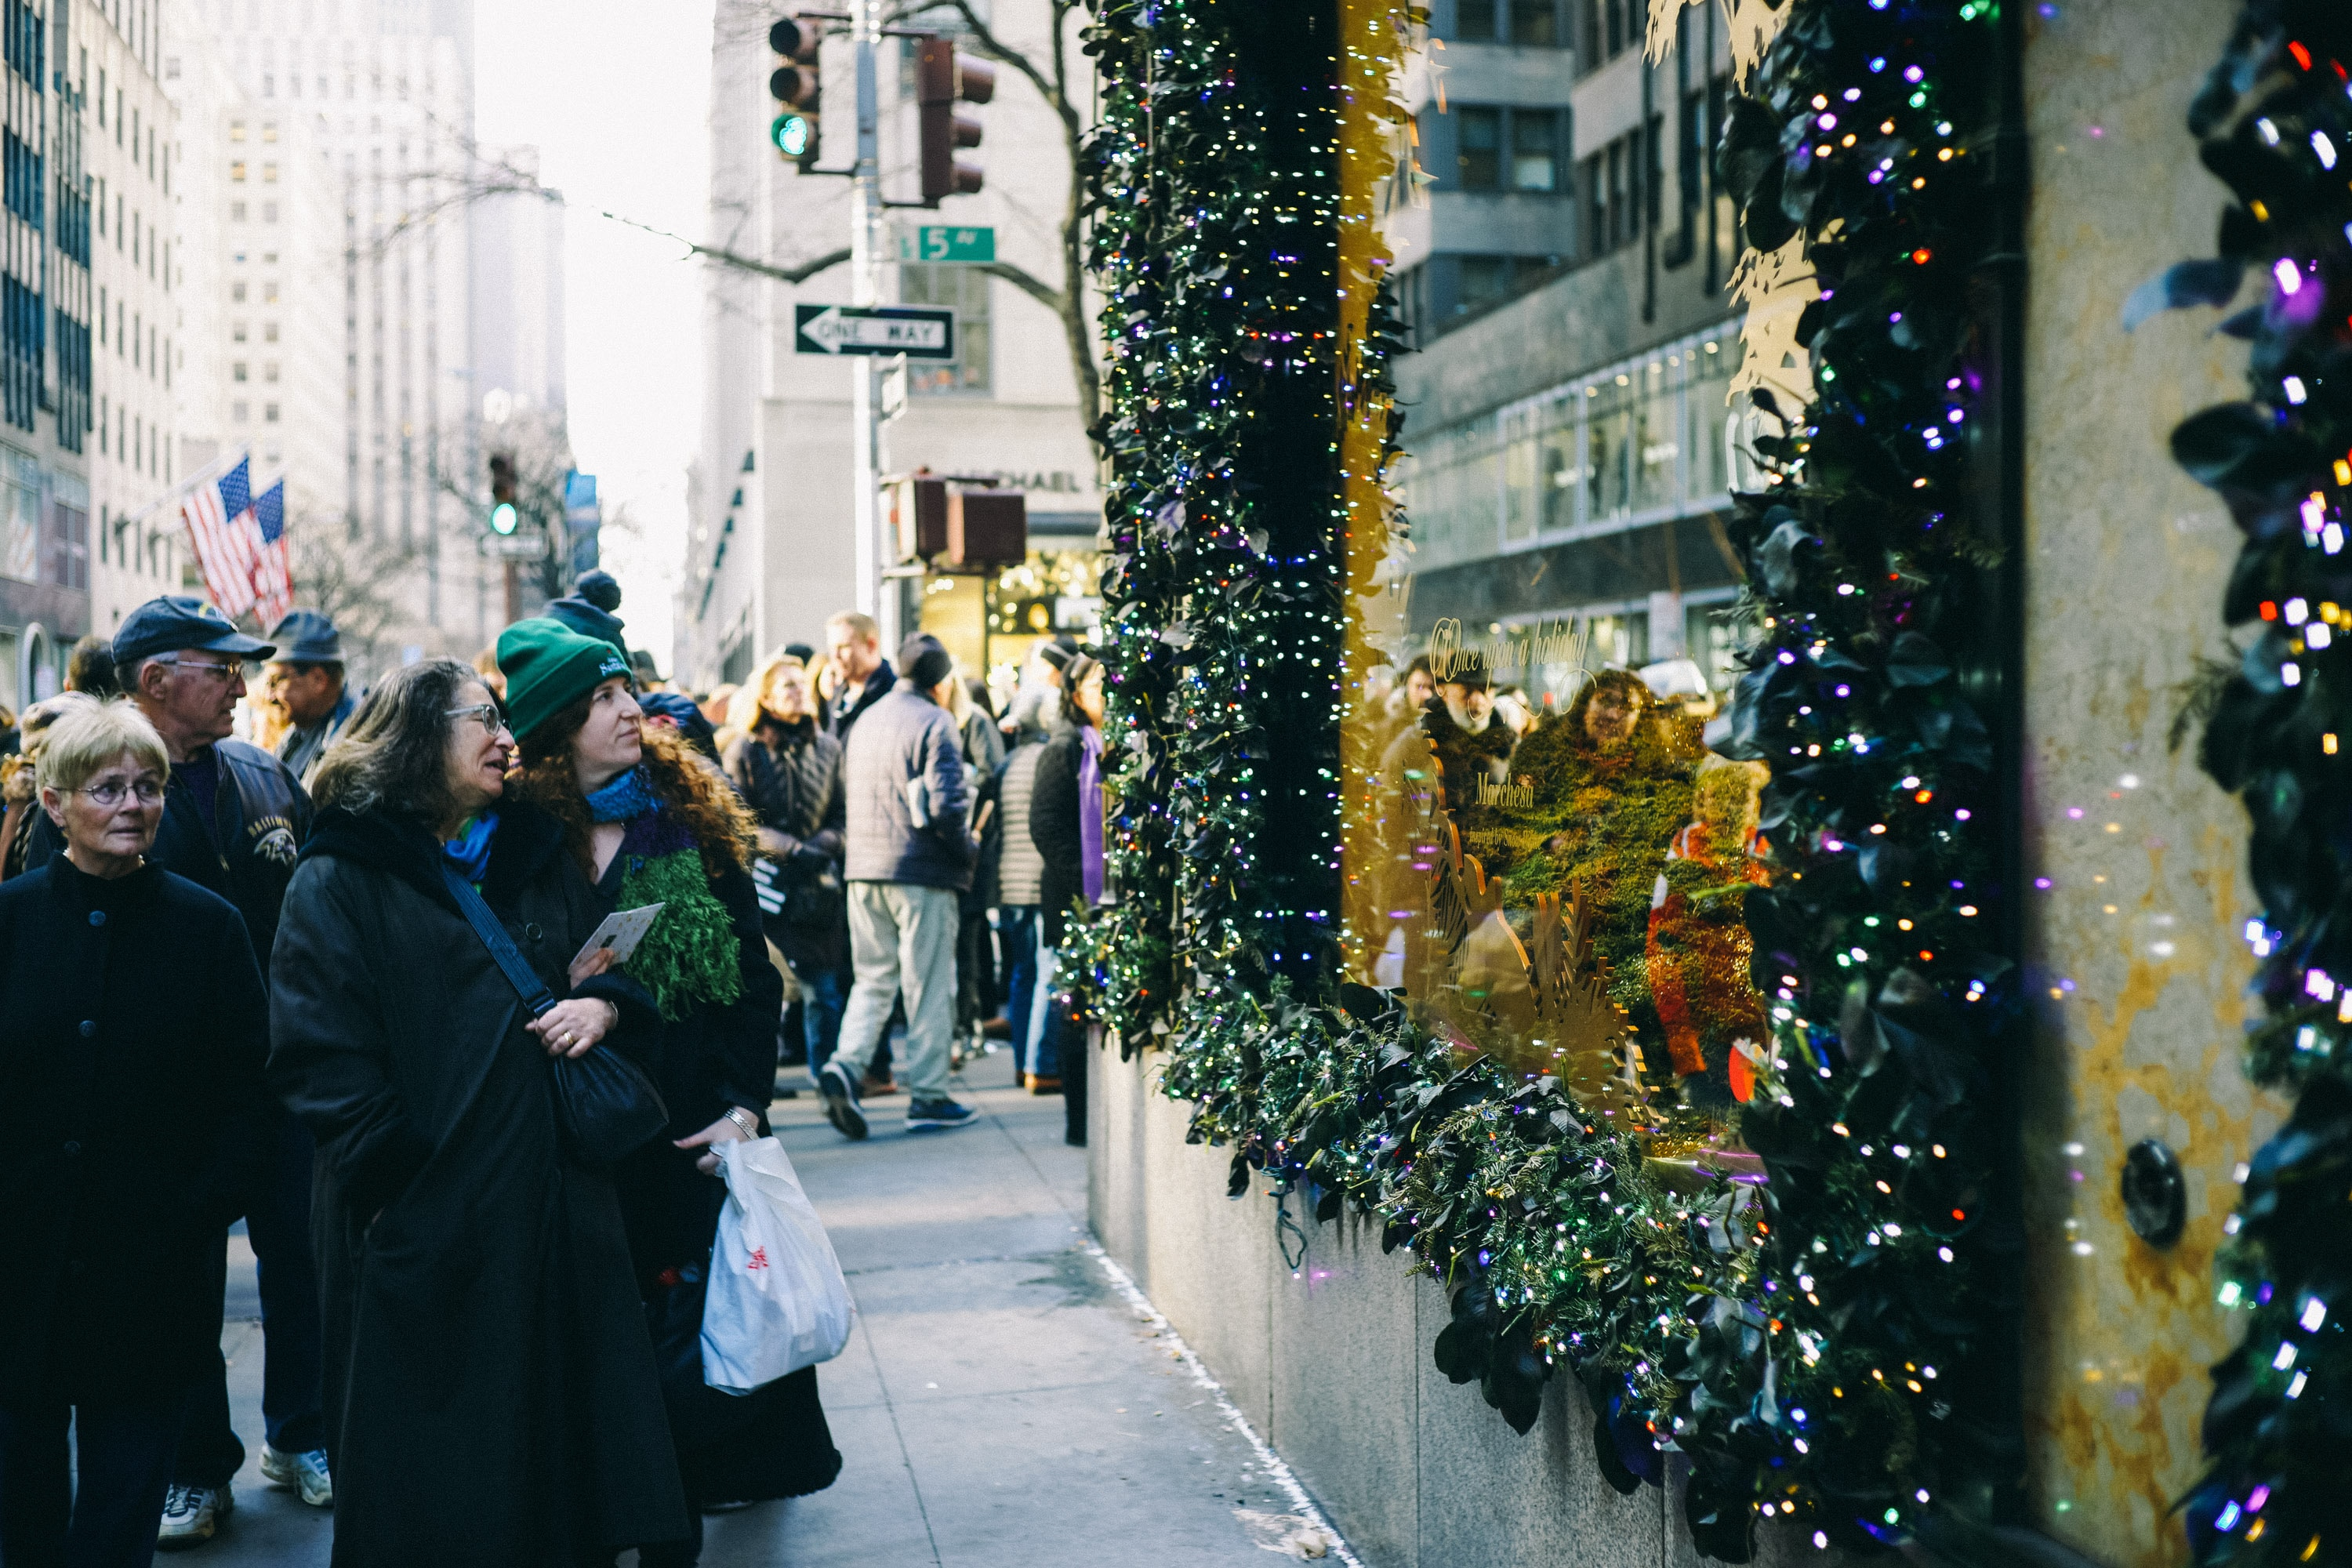 2018 Holiday Retail Survey: Tactics and Problems